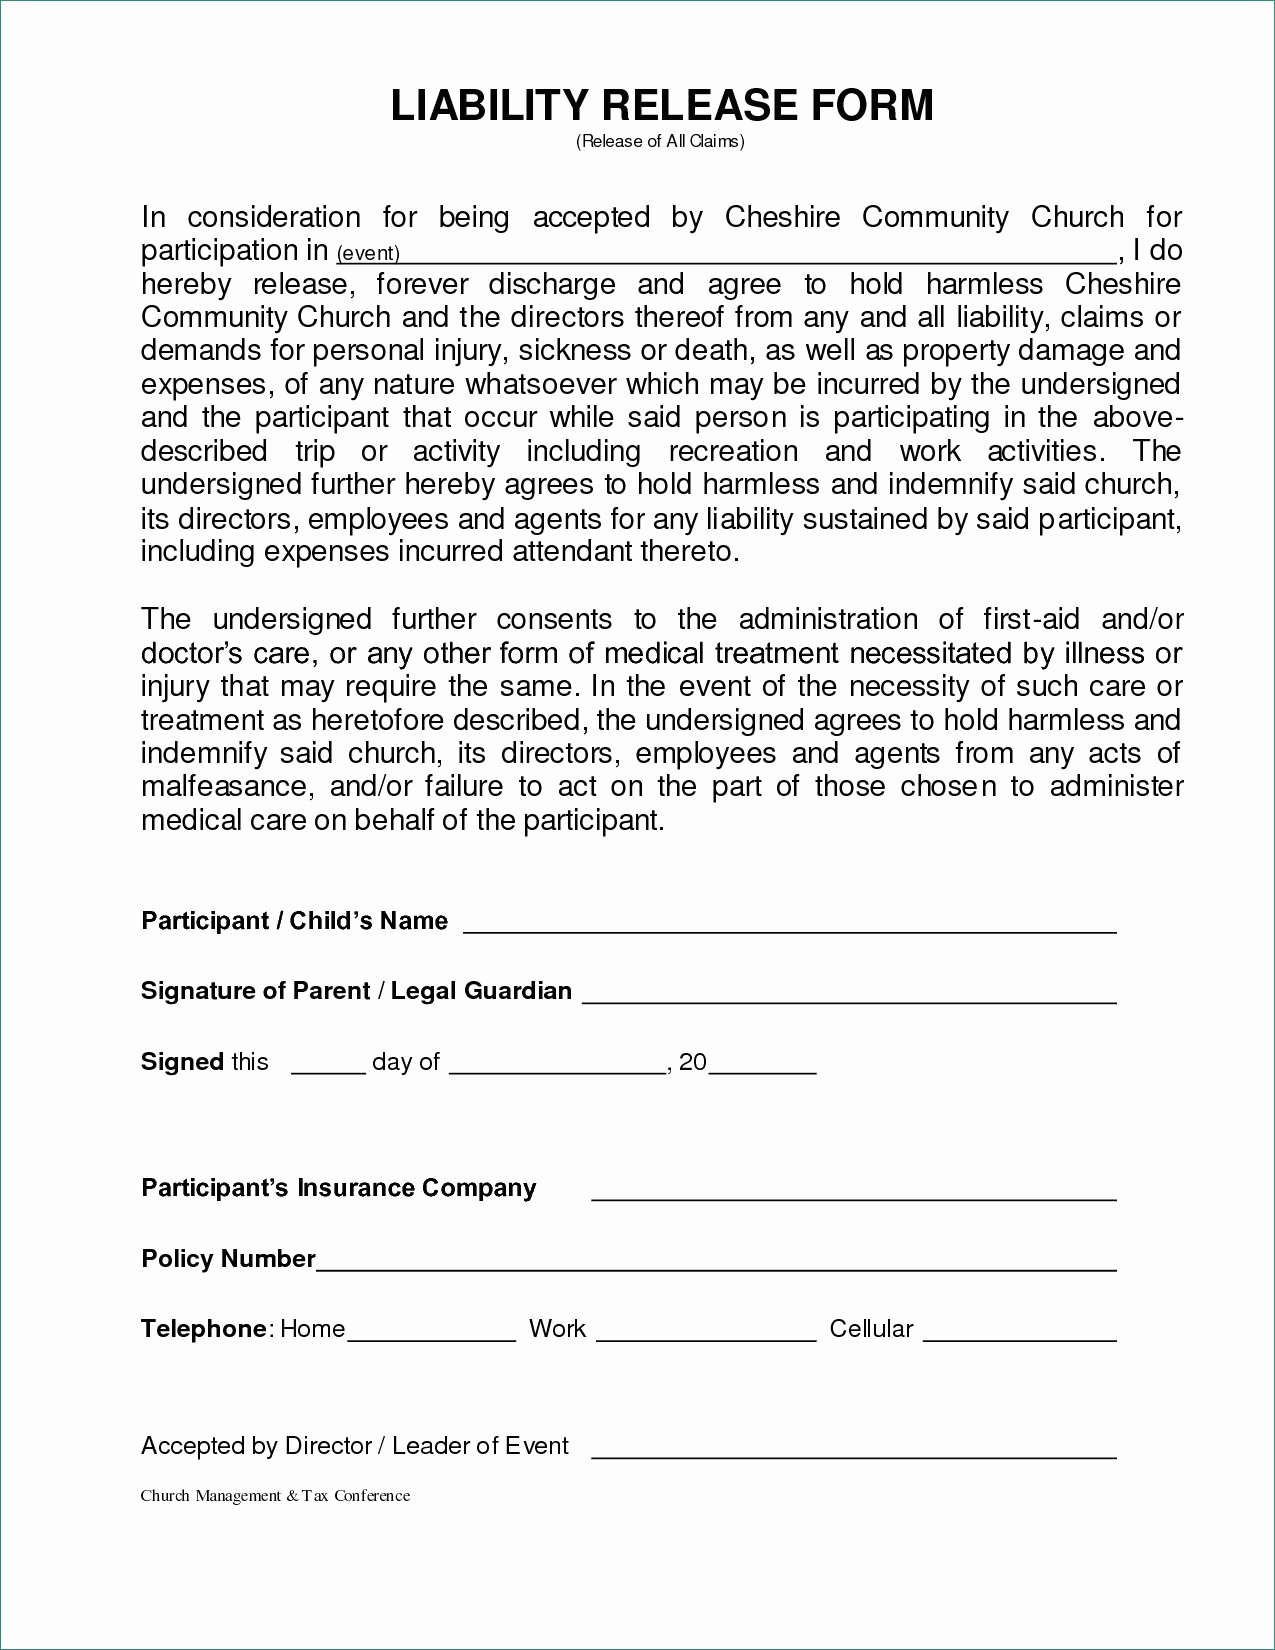 general liability release form image